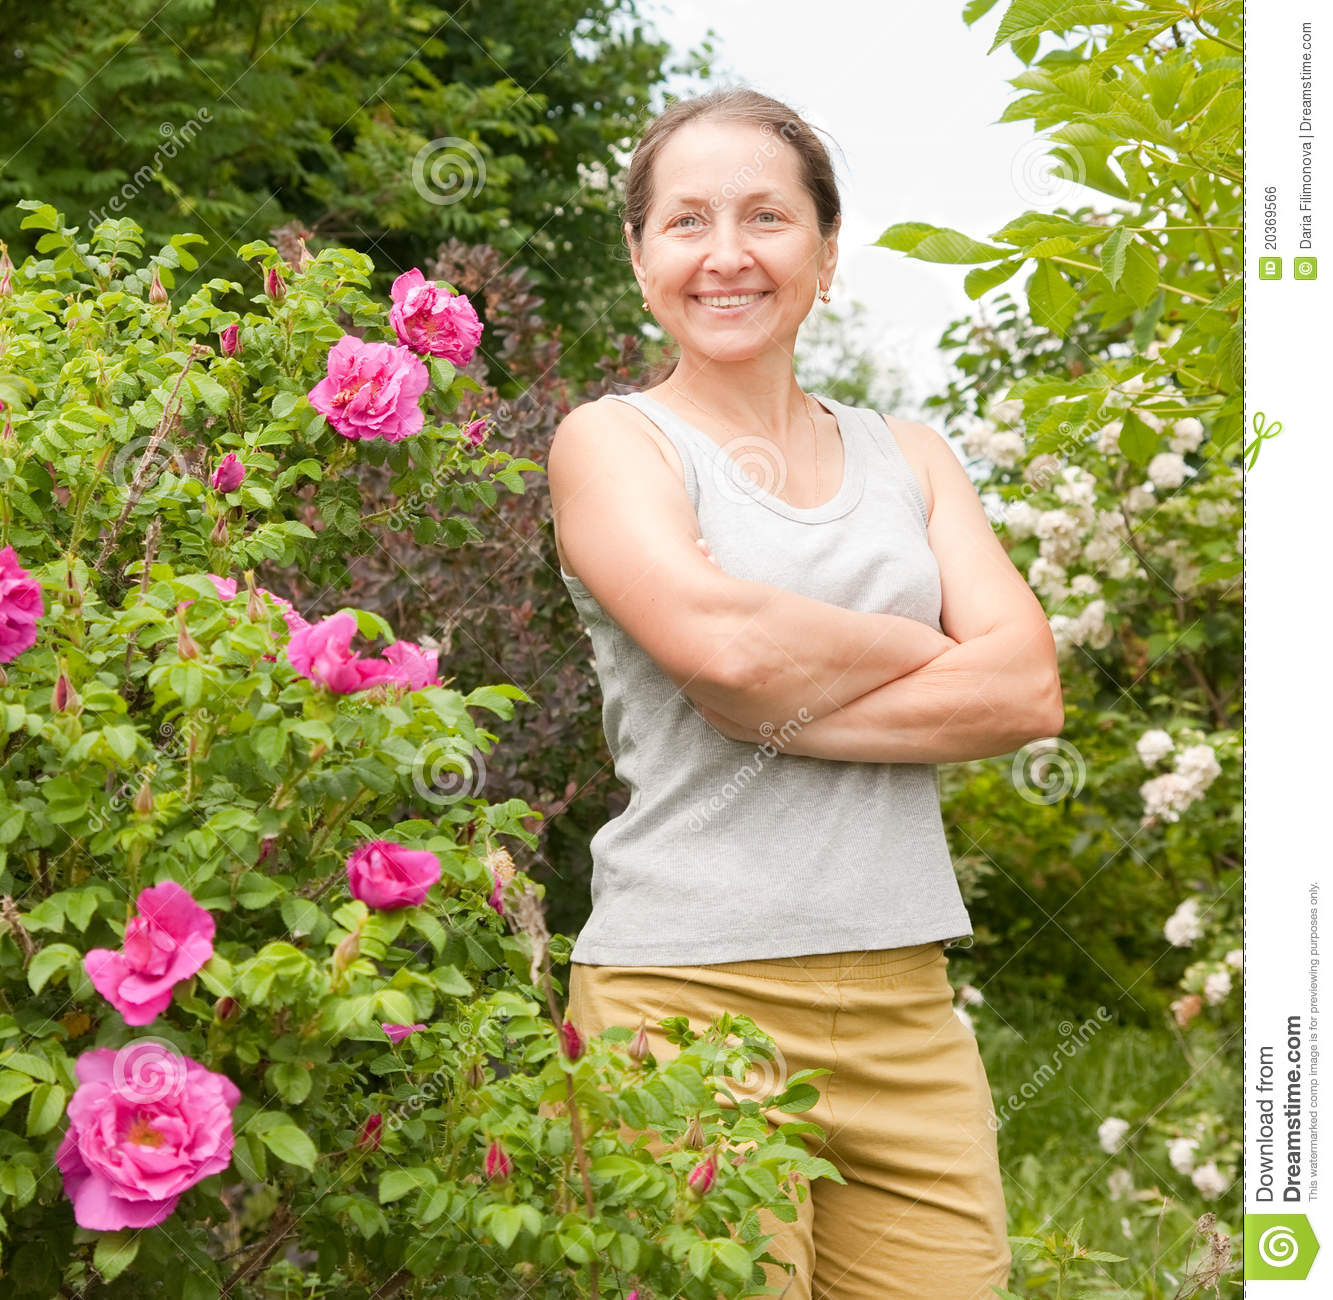 ae815bf8 Woman in garden stock photo. Image of human, plant, mature - 20369566